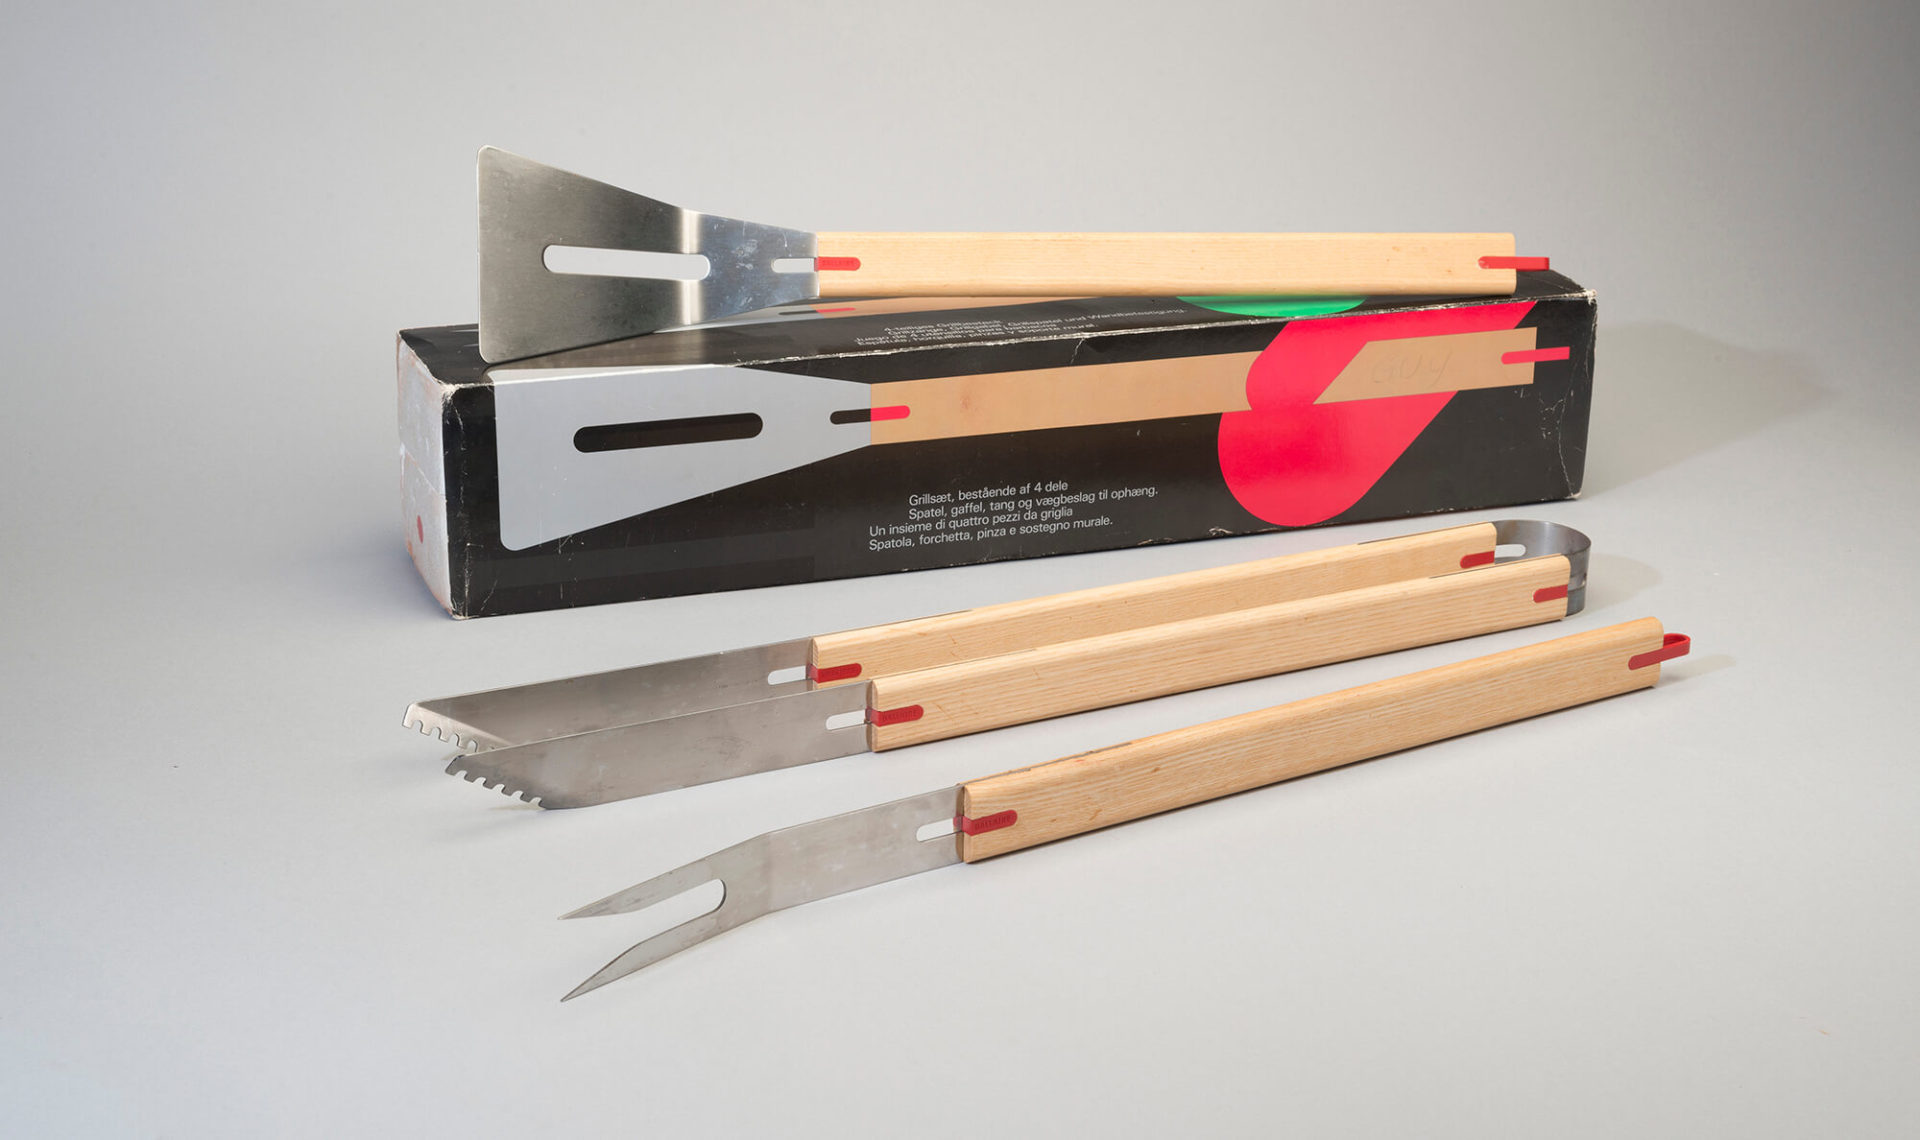 Set of metal barbecue tools with wooden handles.